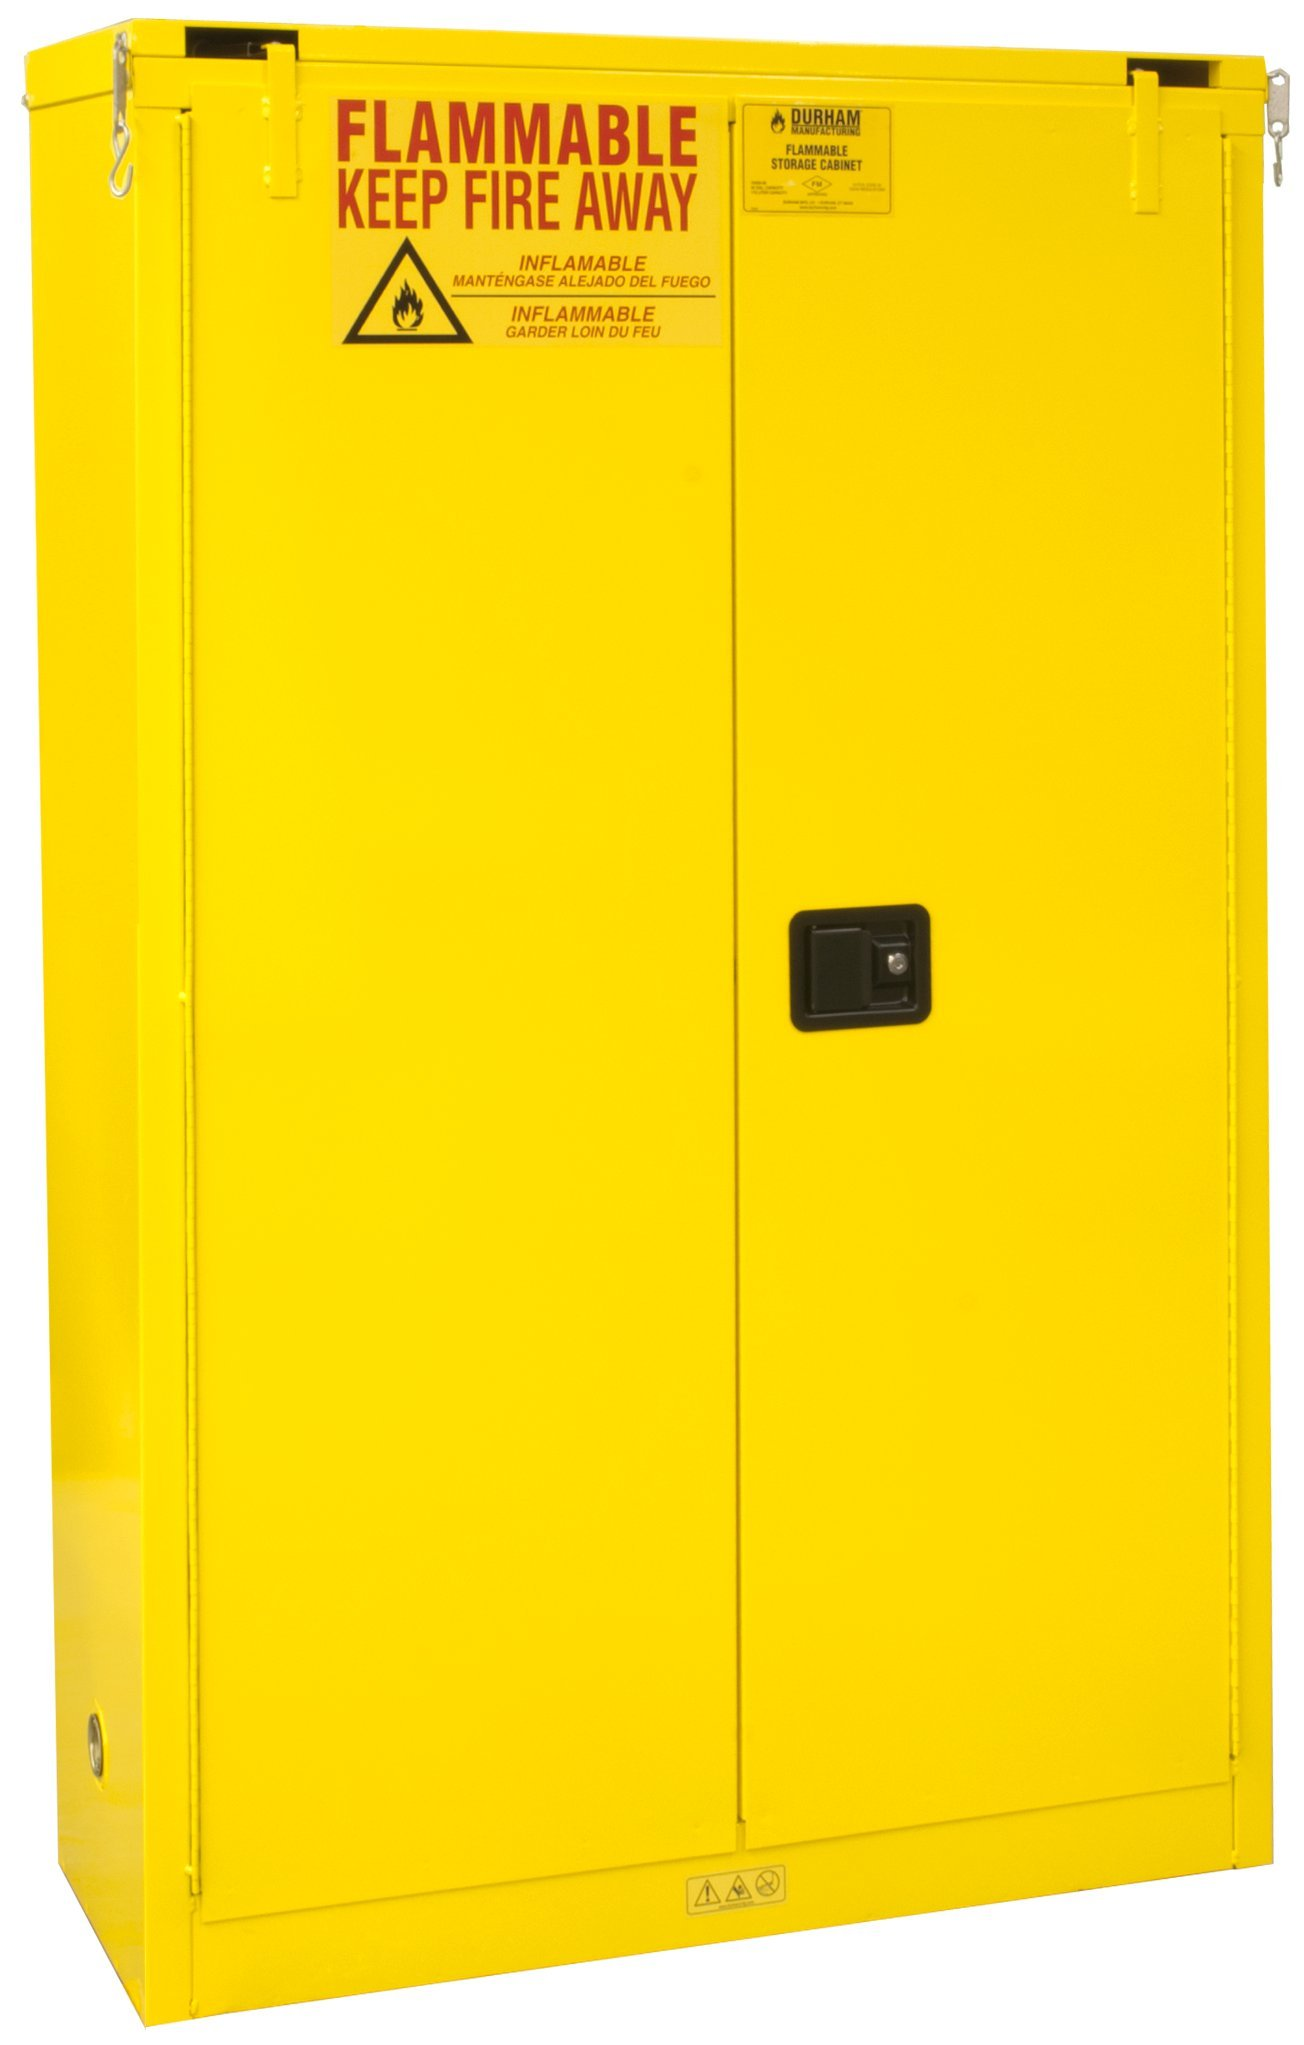 Durham FM Approved 1045S-50 Welded 16 Gauge Steel Flammable Safety Self Closing Door Cabinet, 2 Shelves, 45 gallons Capacity, 18'' Length x 43'' Width x 65'' Height, Yellow Powder Coat Finish